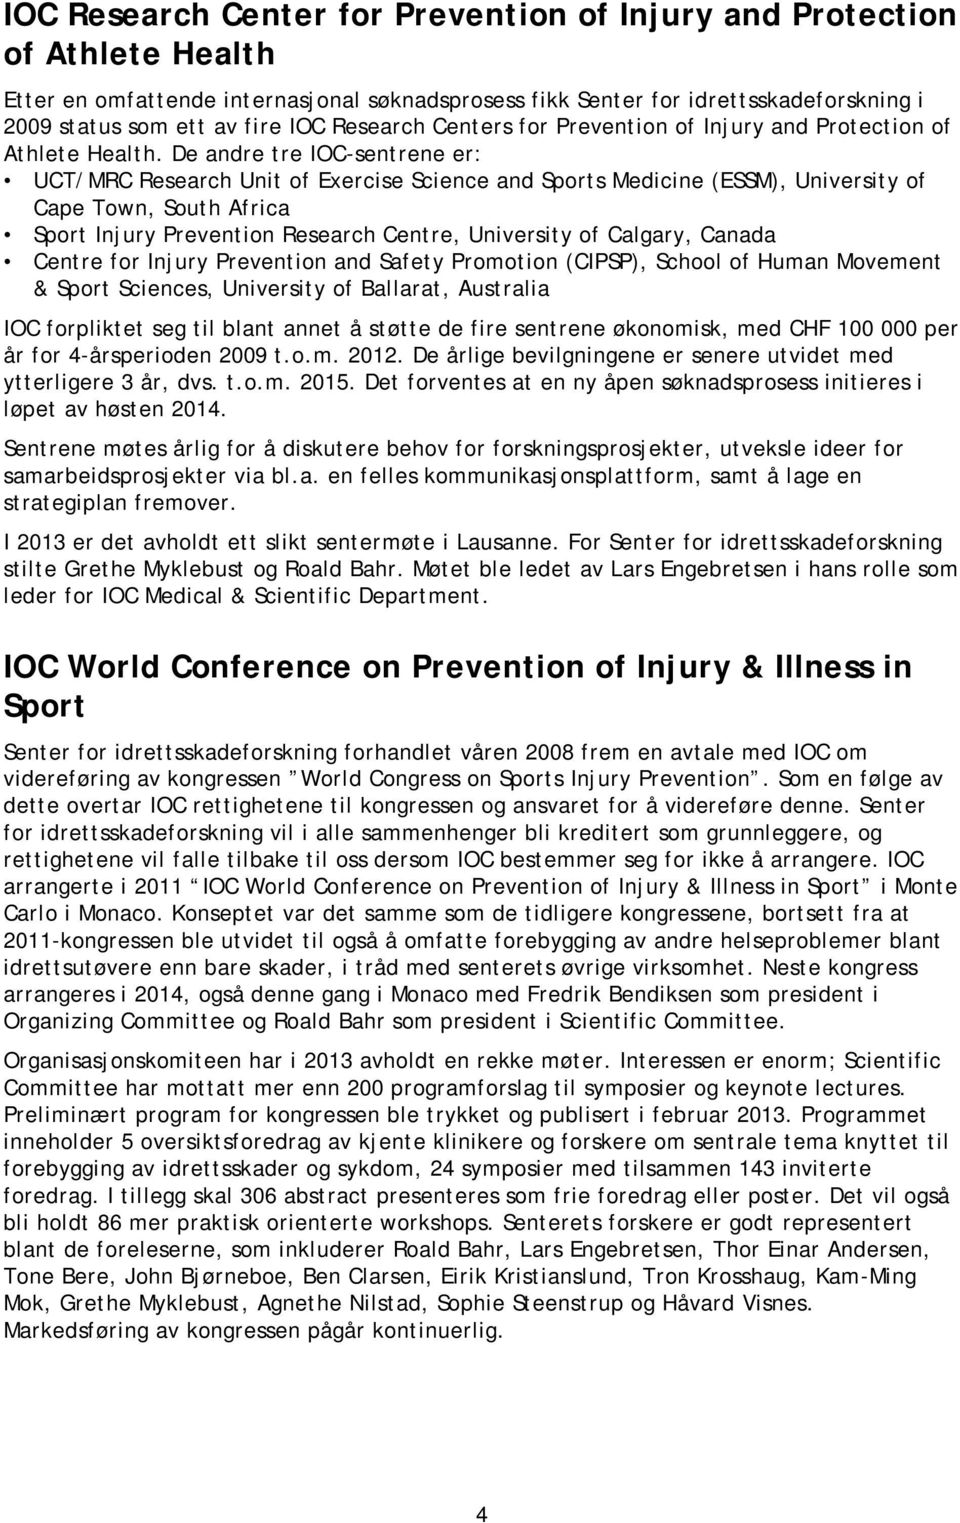 De andre tre IOC-sentrene er: UCT/MRC Research Unit of Exercise Science and Sports Medicine (ESSM), University of Cape Town, South Africa Sport Injury Prevention Research Centre, University of